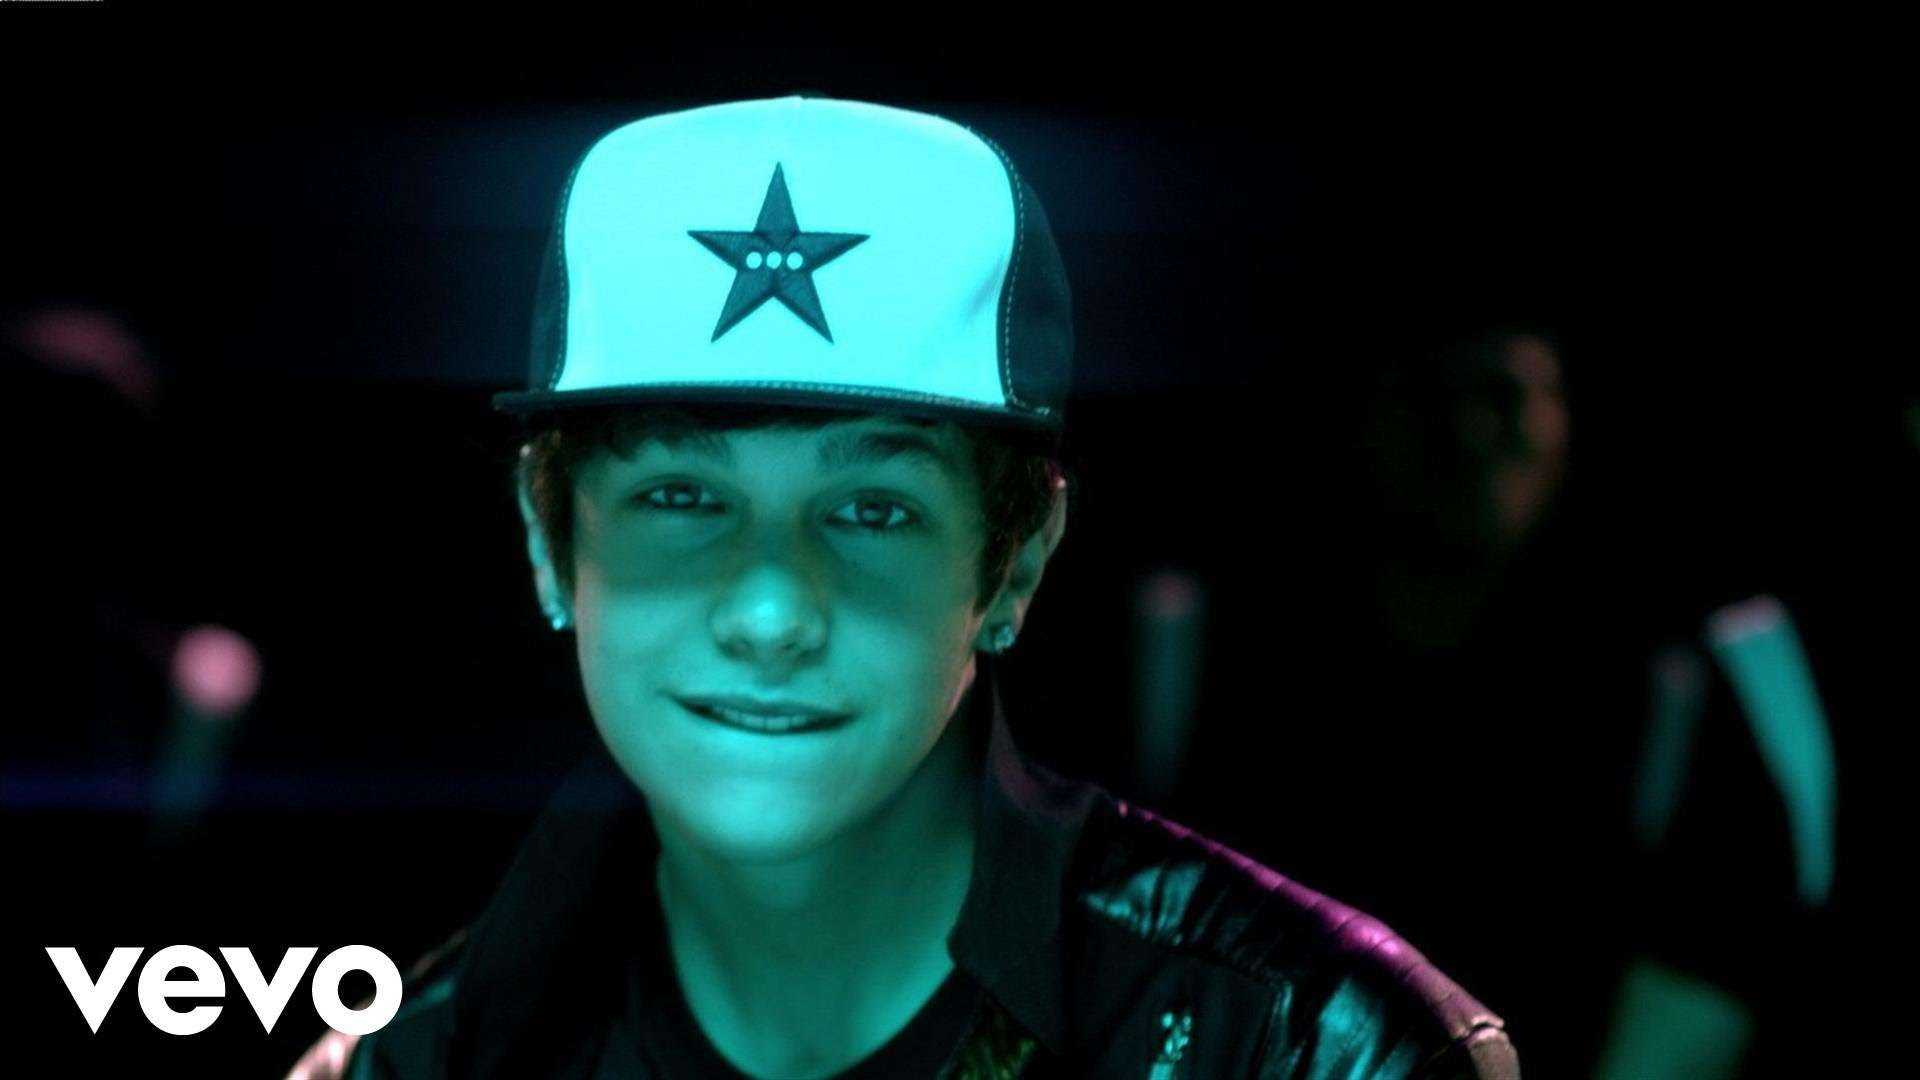 Austin Mahone ft. Flo Rida - Say You're Just A Friend (Official Video) - YouTube